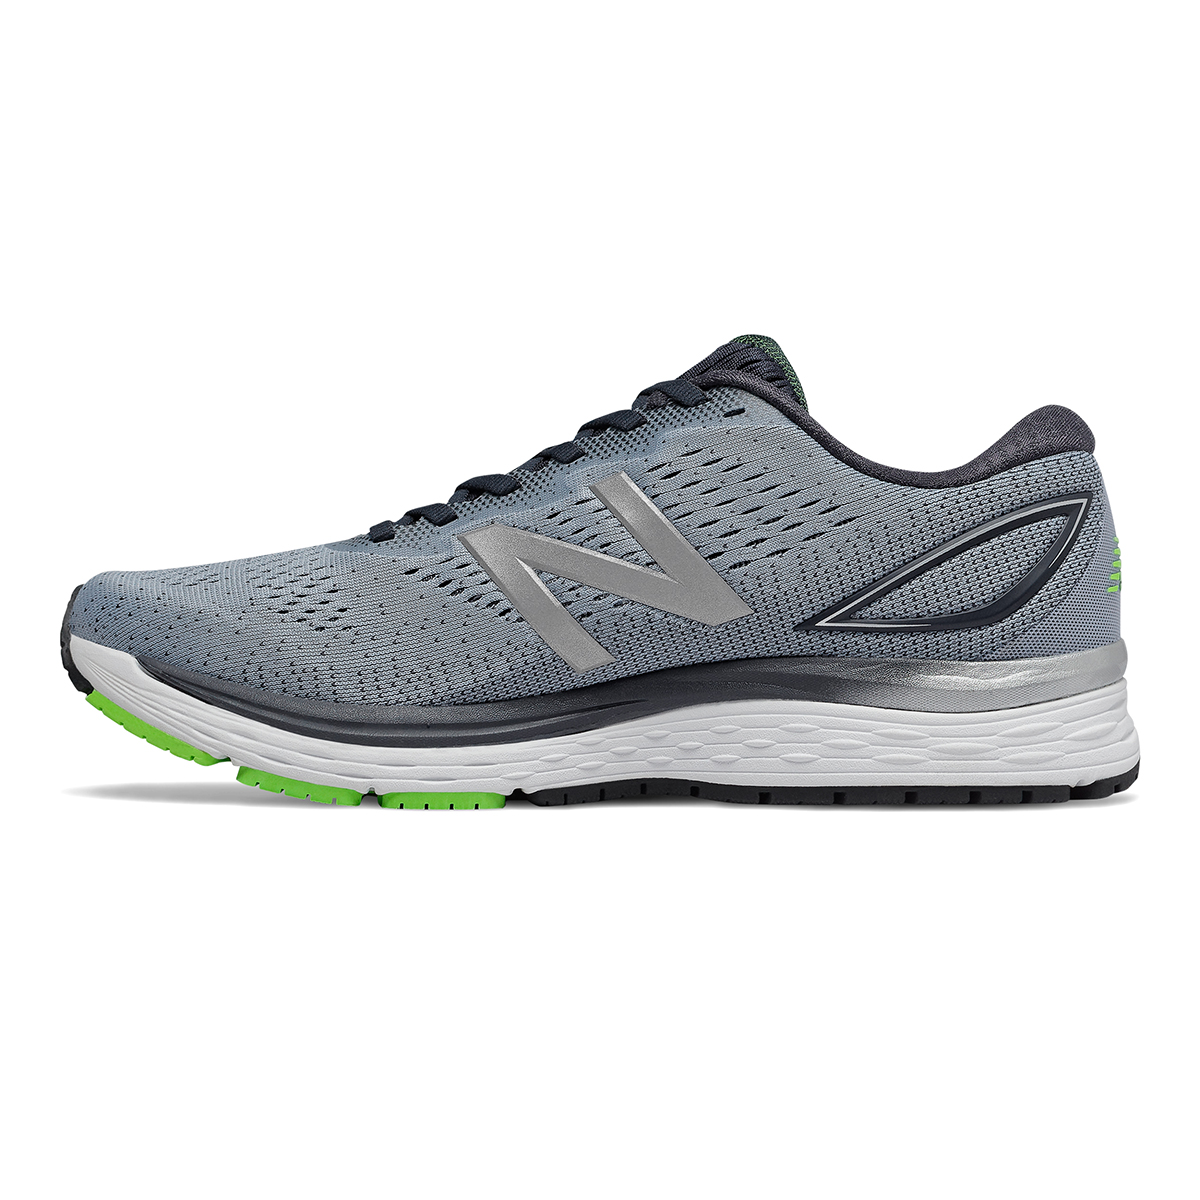 Men's New Balance 880V9 Running Shoe, , large, image 2